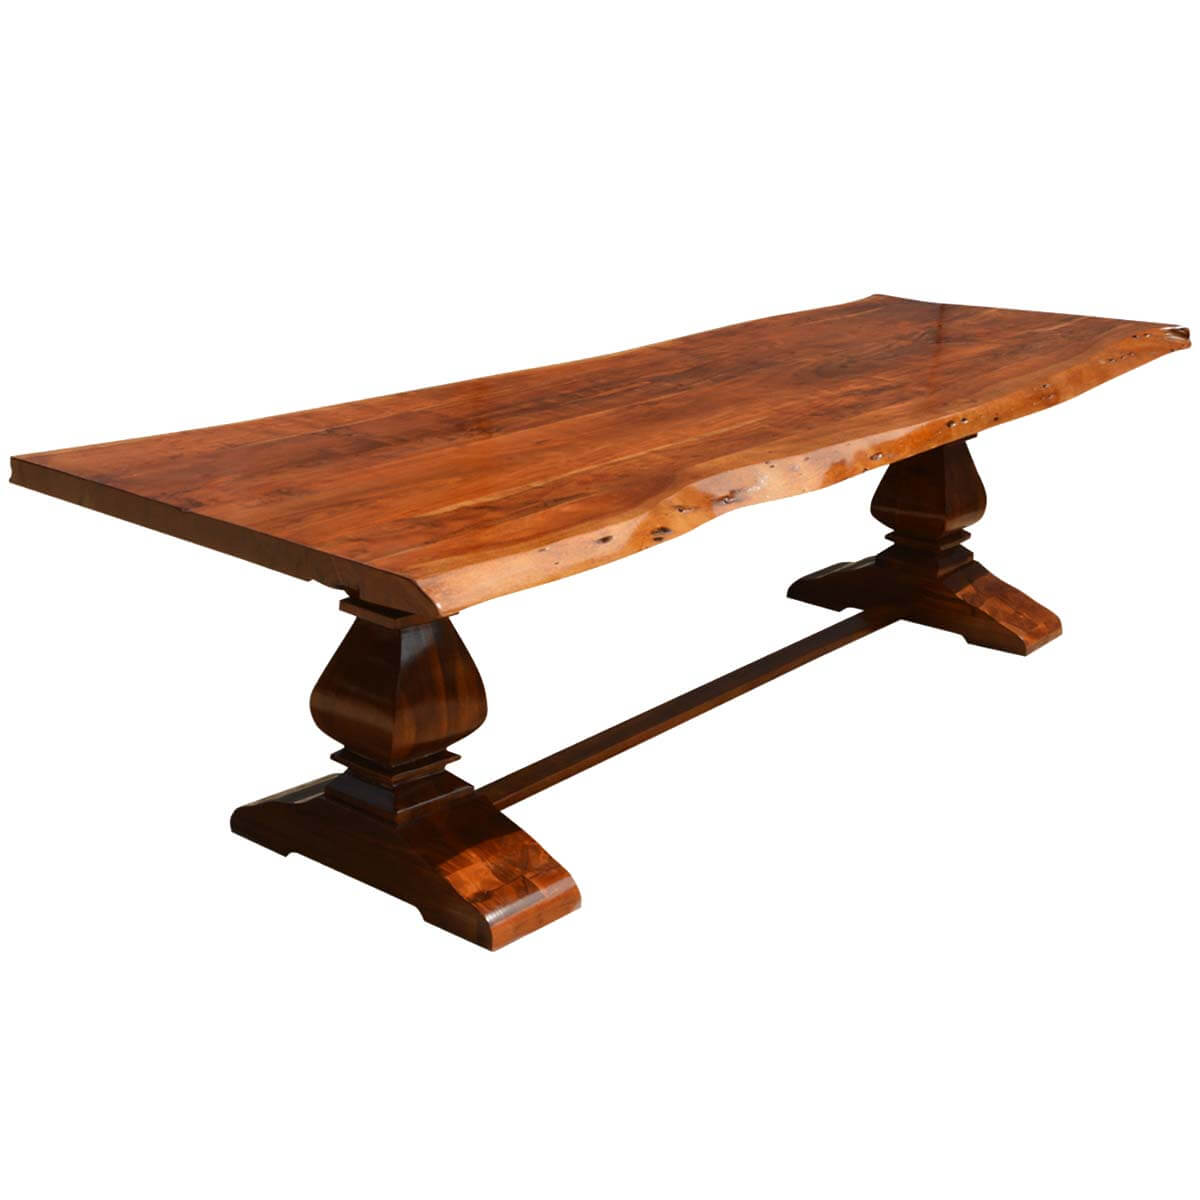 Live edge acacia wood trestle dining table Trestle dining table